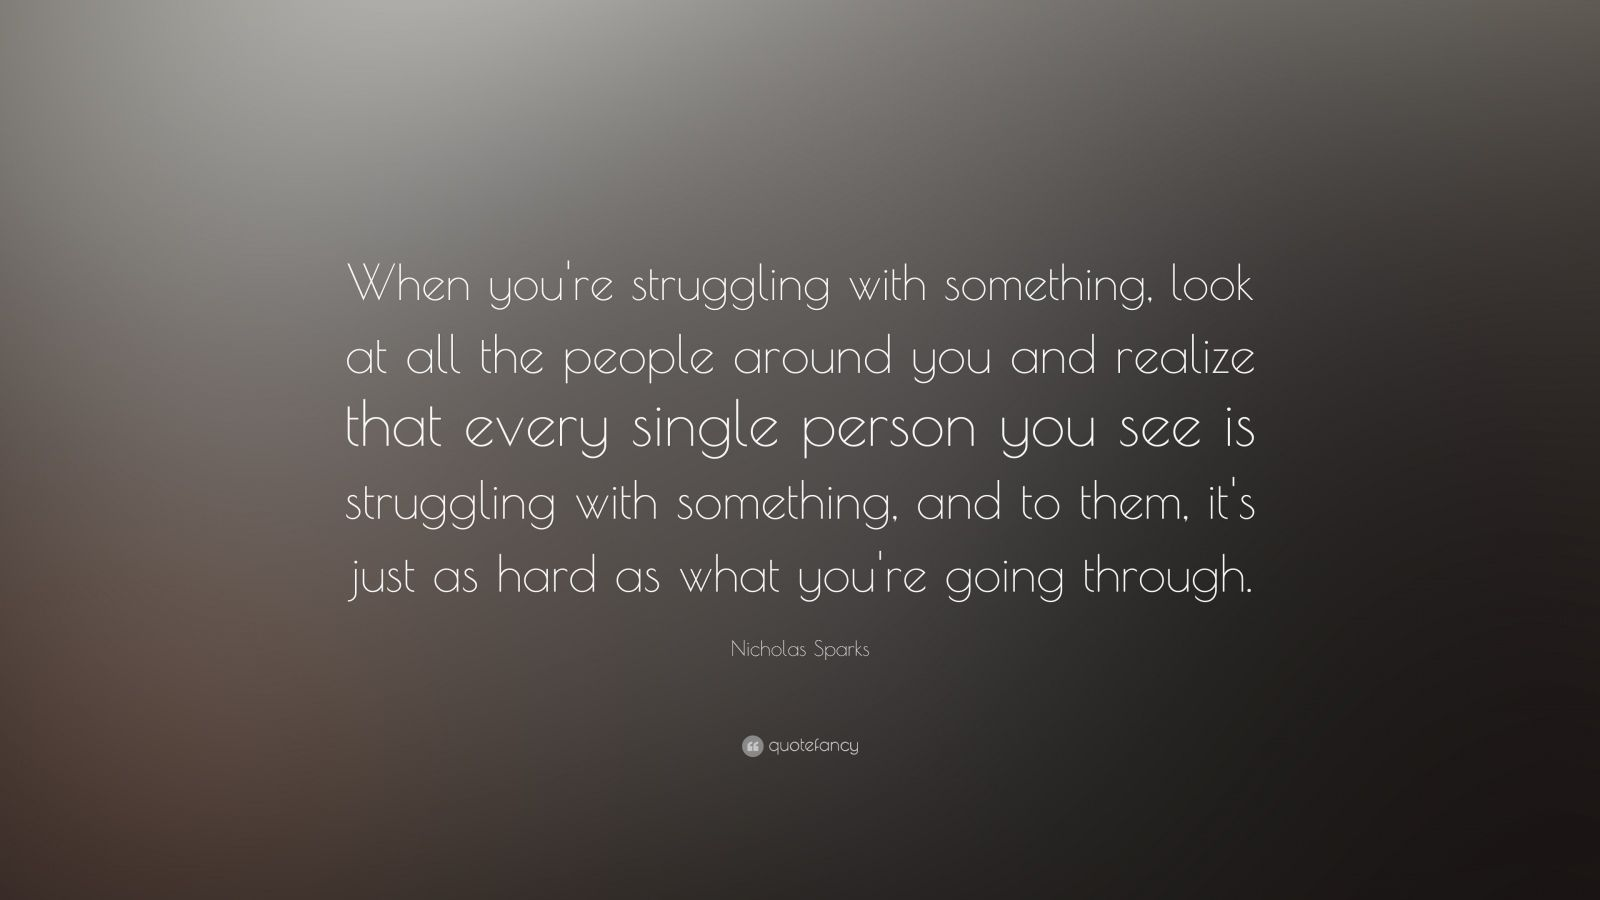 """Nicholas Sparks Quote: """"When you're struggling with something, look at all the people around you and realize that every single person you see is struggling with something, and to them, it's just as hard as what you're going through."""""""